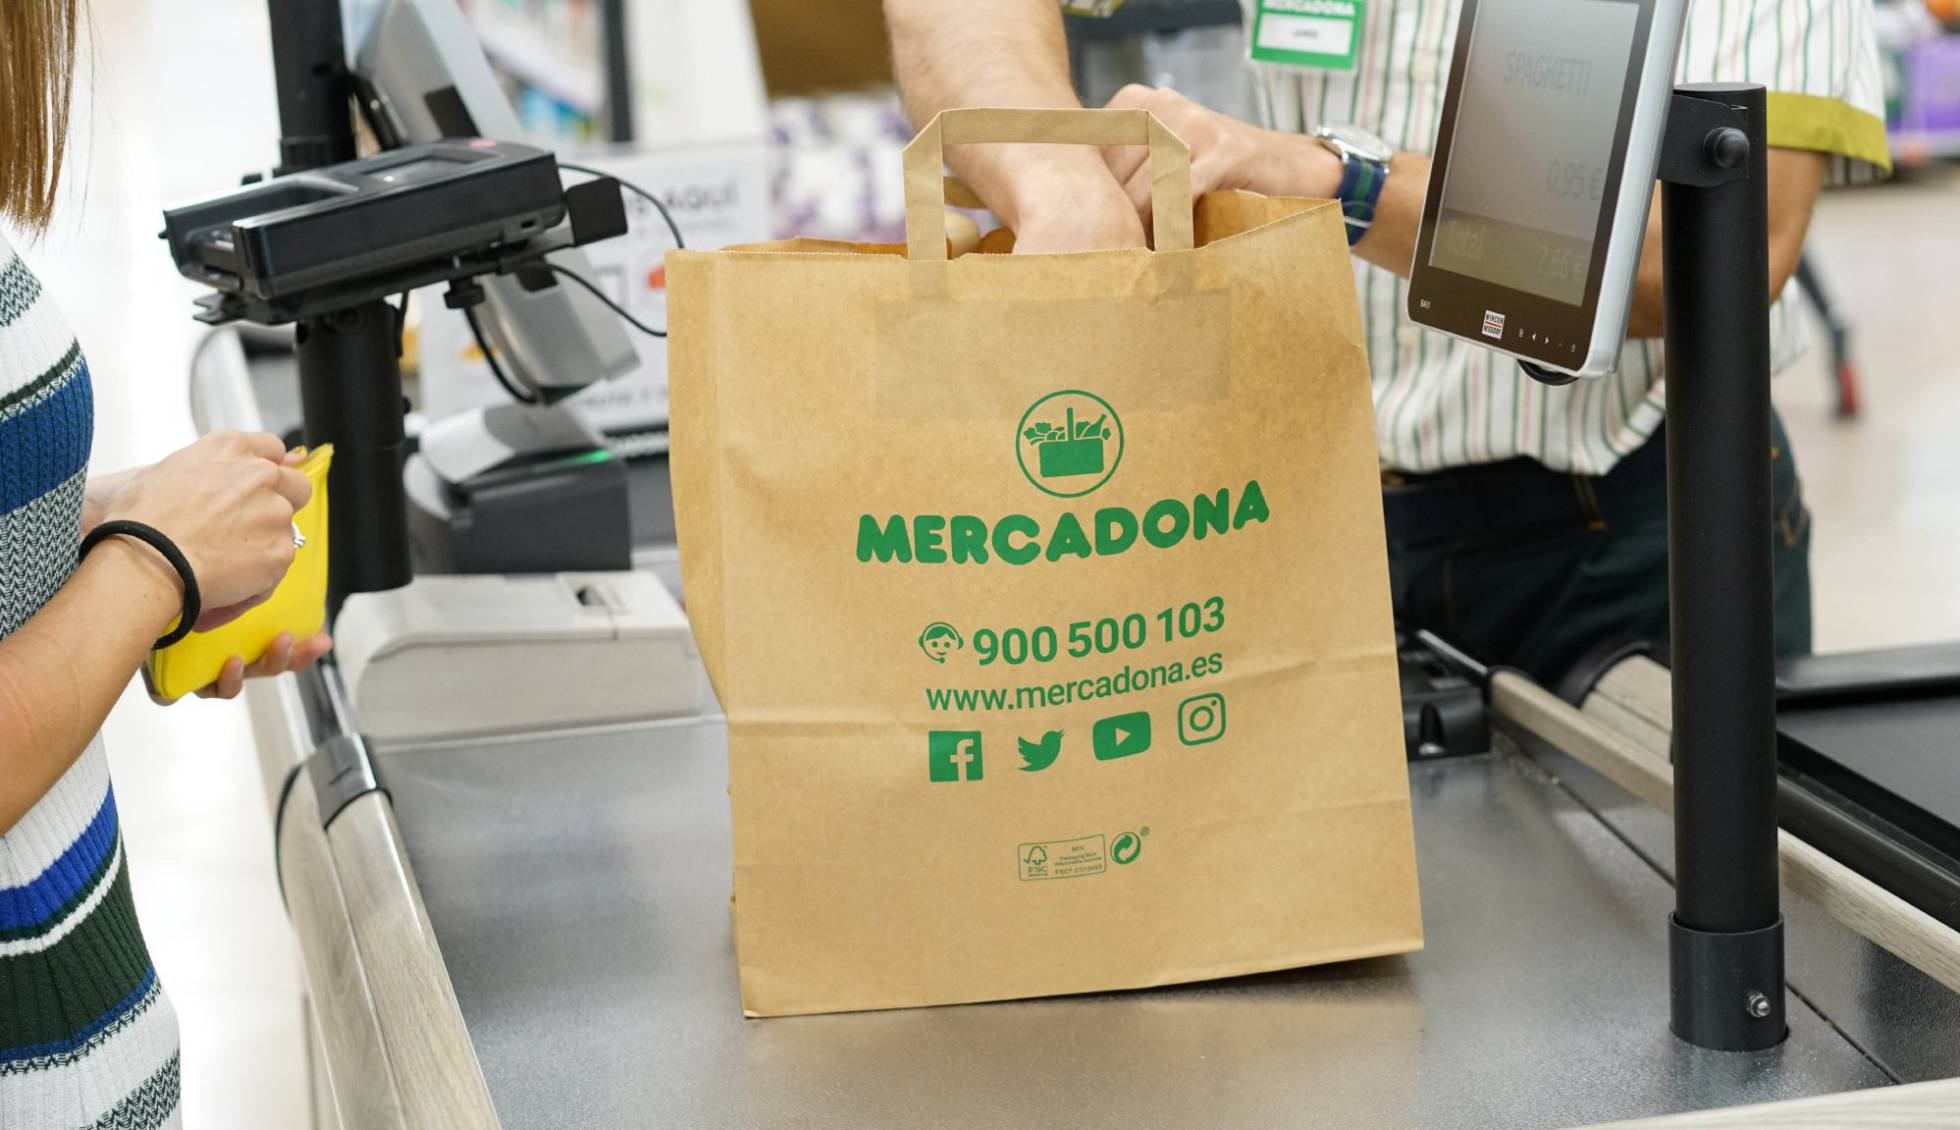 mercadona_noticia_normal_recorte